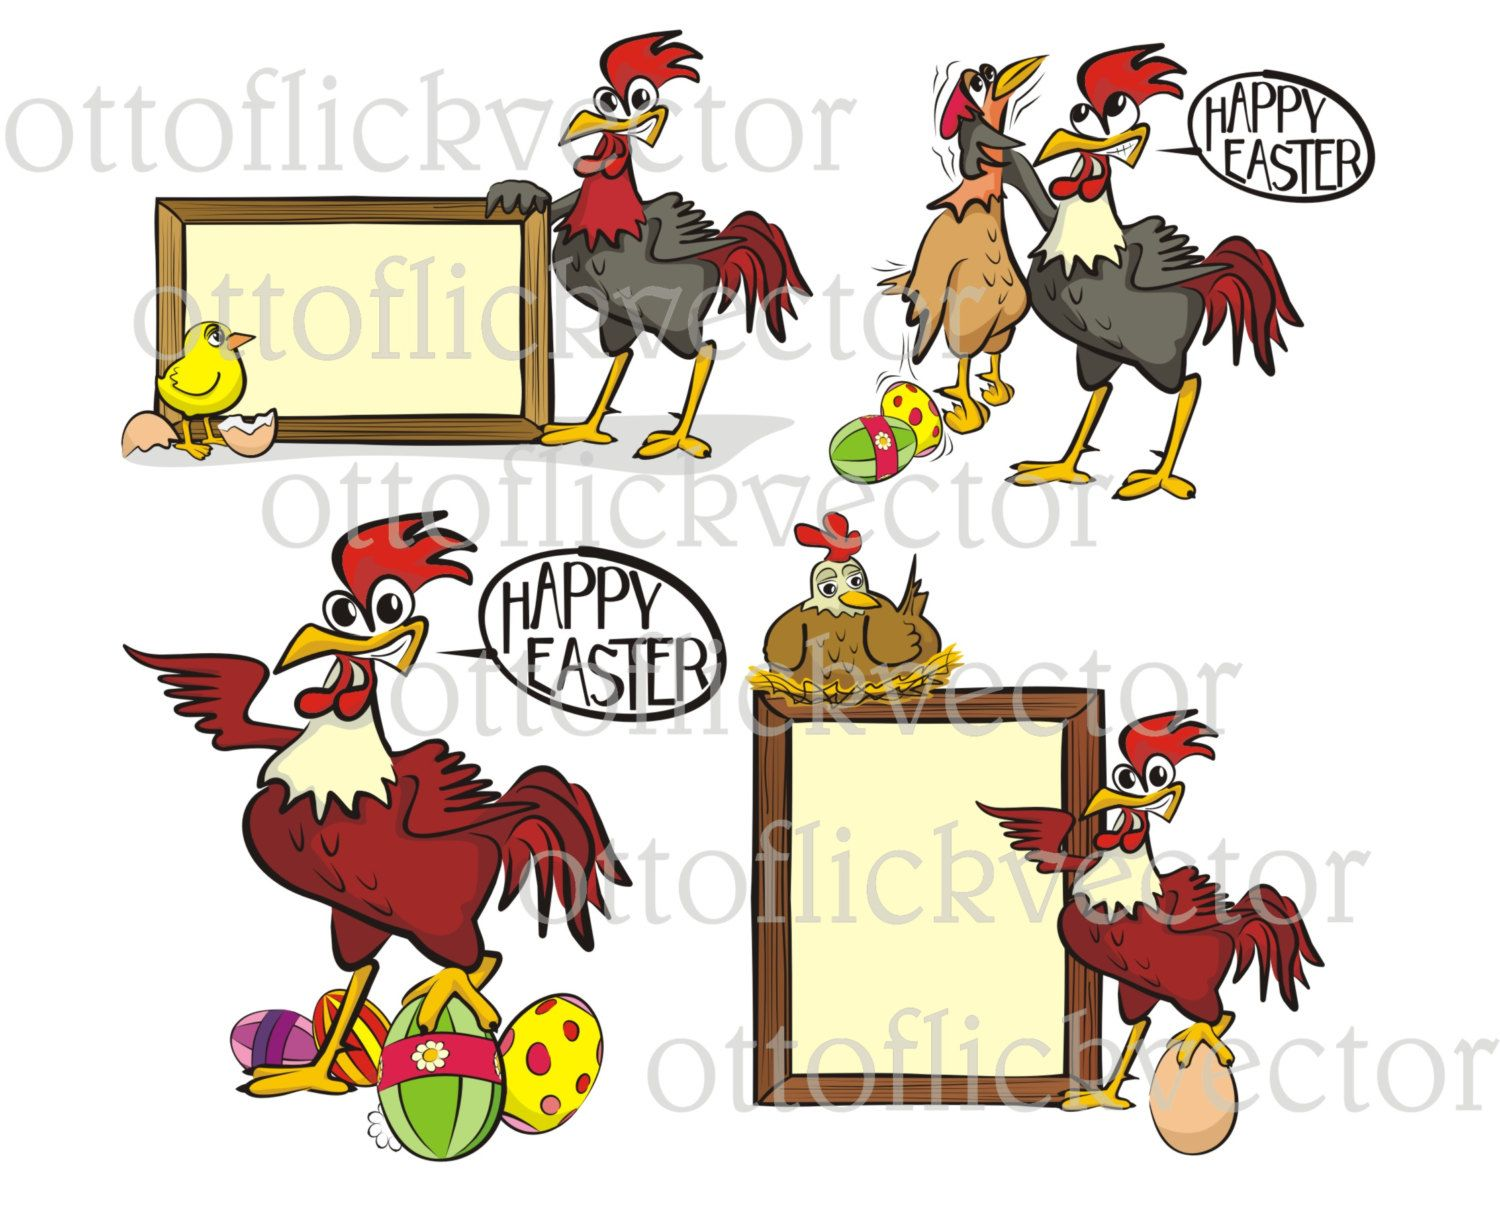 HAPPY EASTER VECTOR clipart, chicken, hen, chick rooster cartoons ...